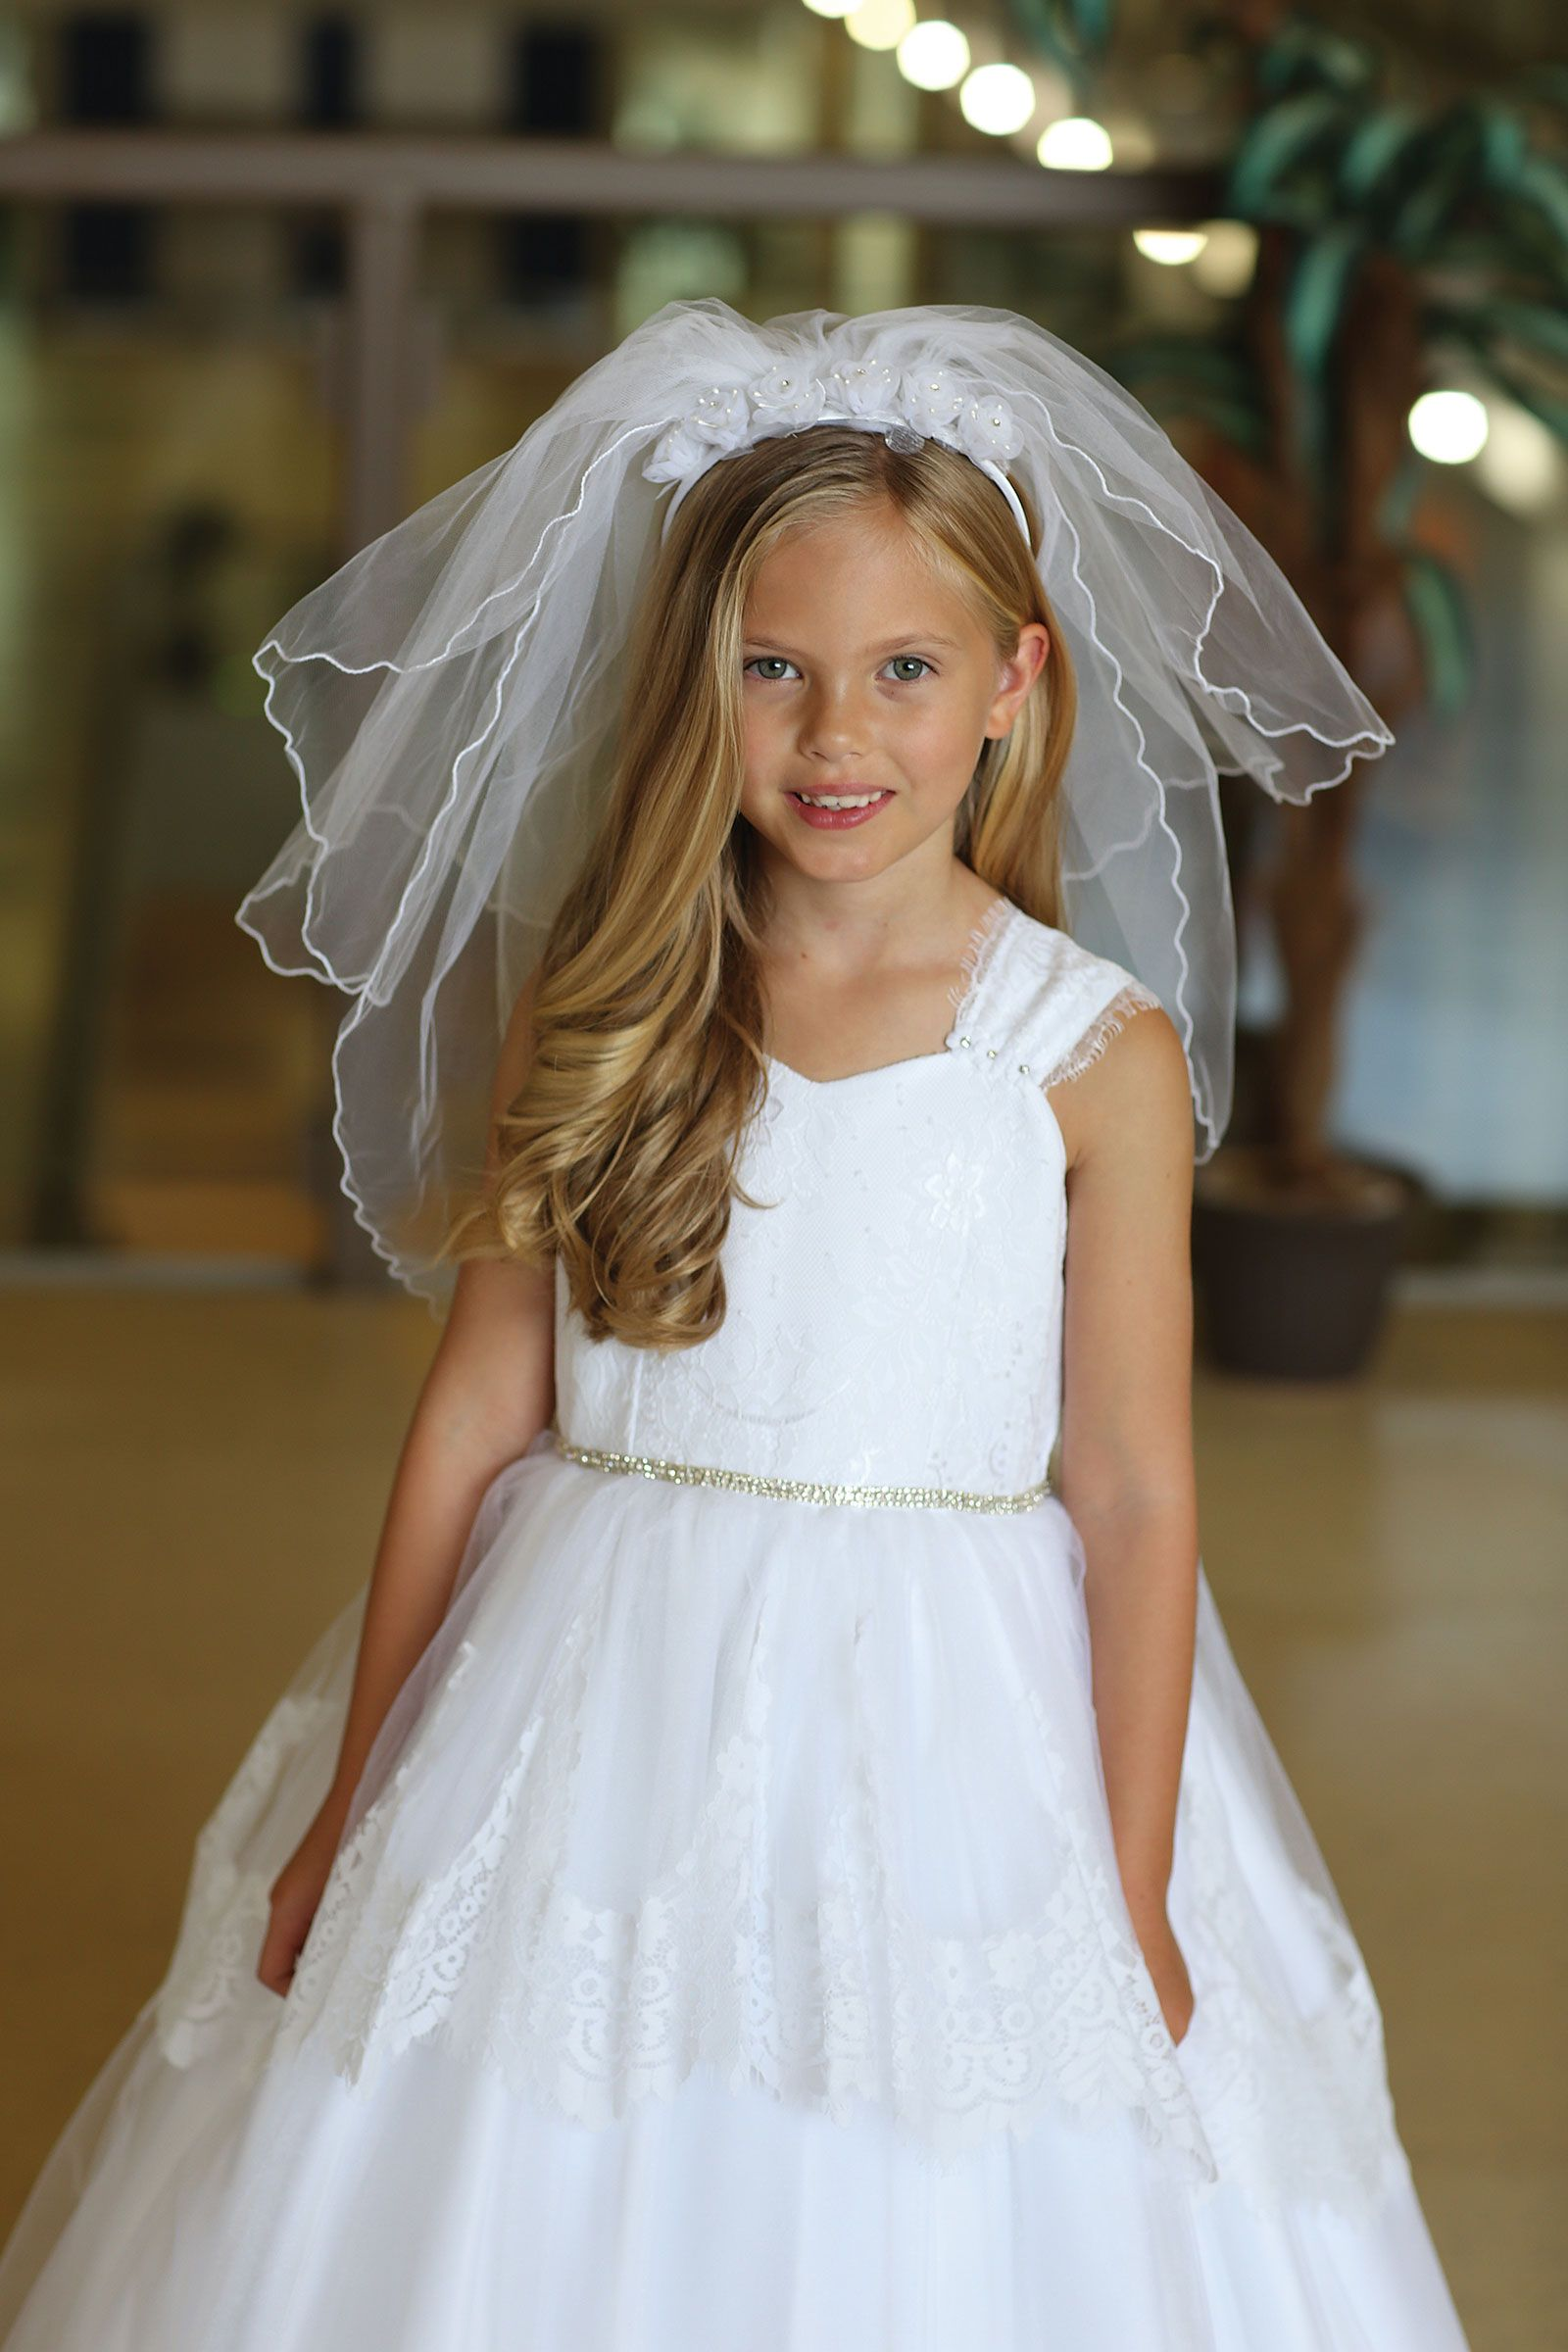 Agvl1212 Communion Veil Style Vl1212 White Headband With Double